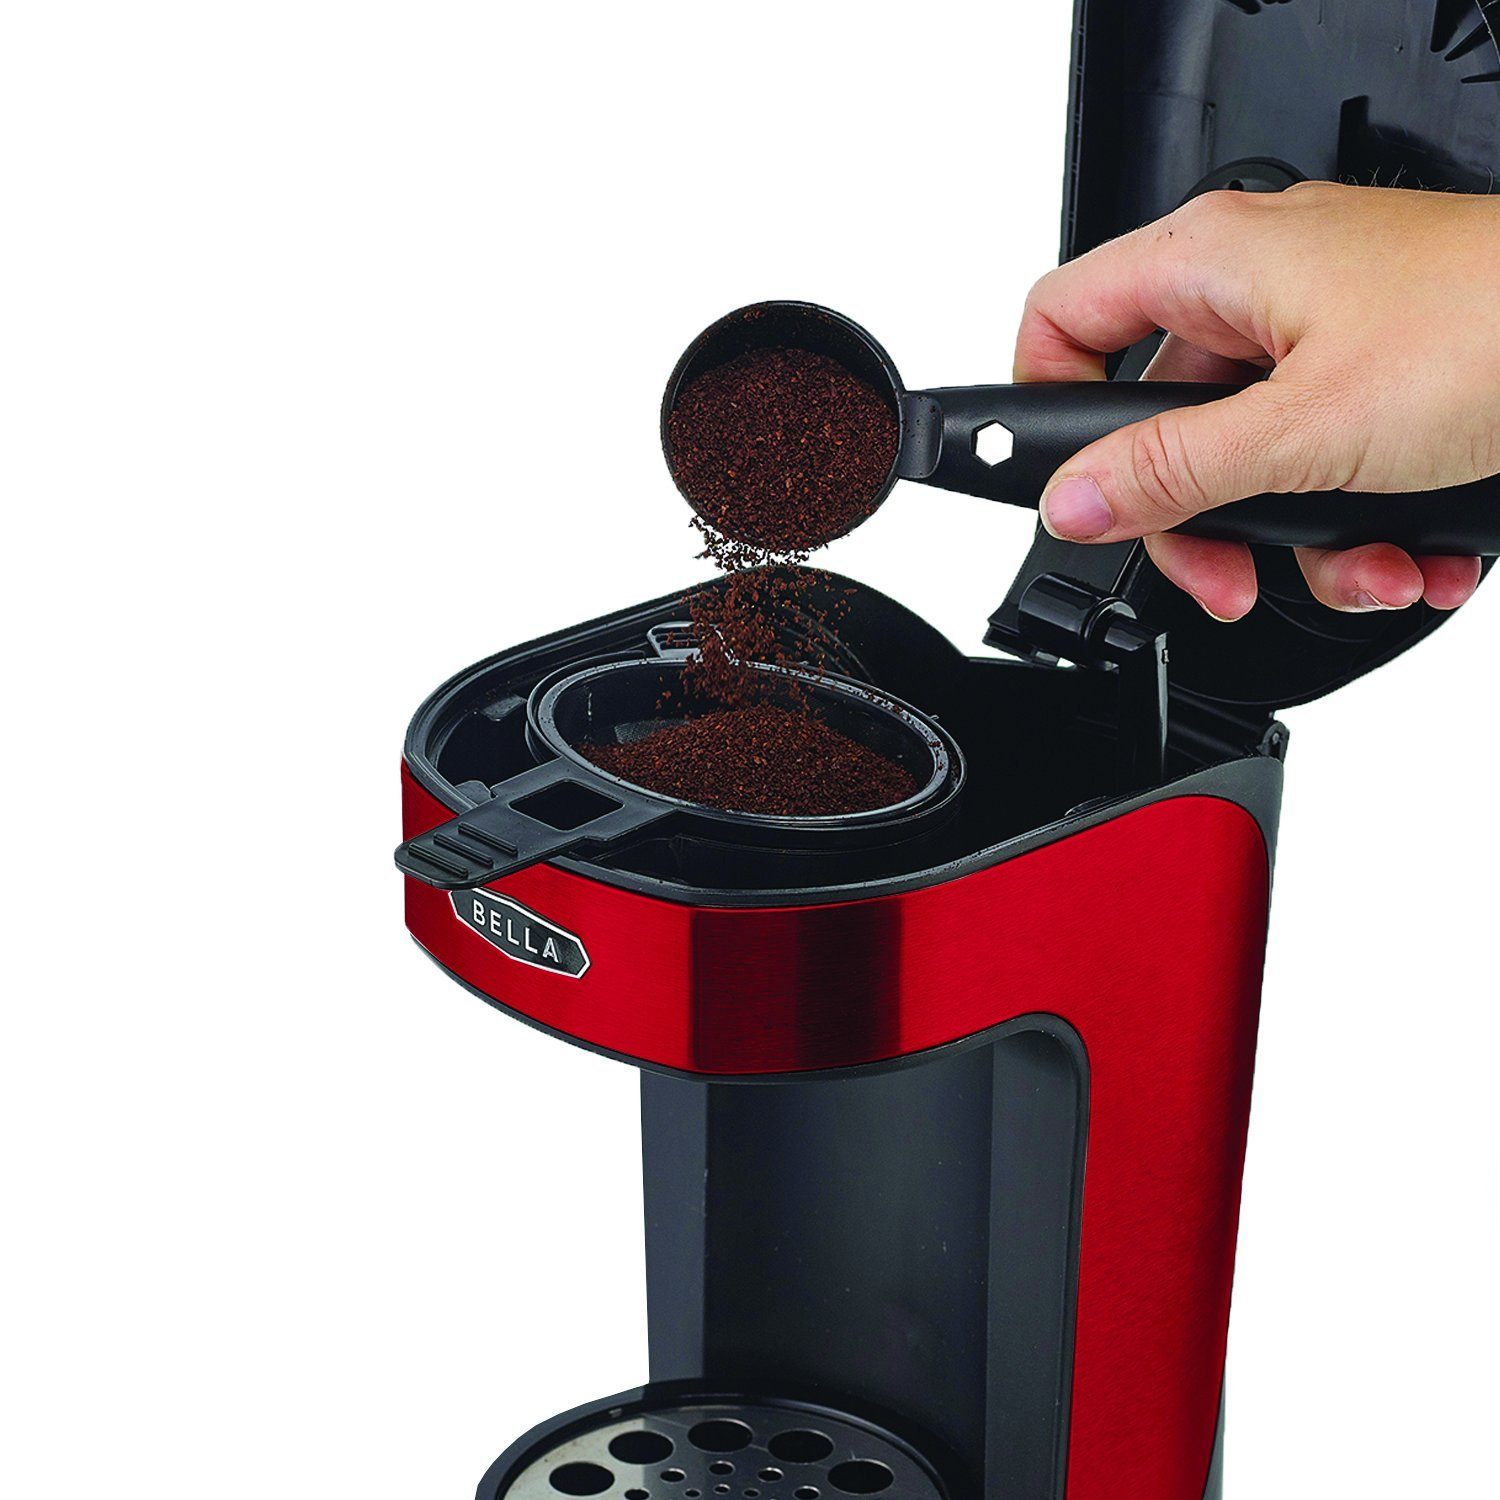 Bella One Scoop One Cup Coffee Maker Red Best Price Review